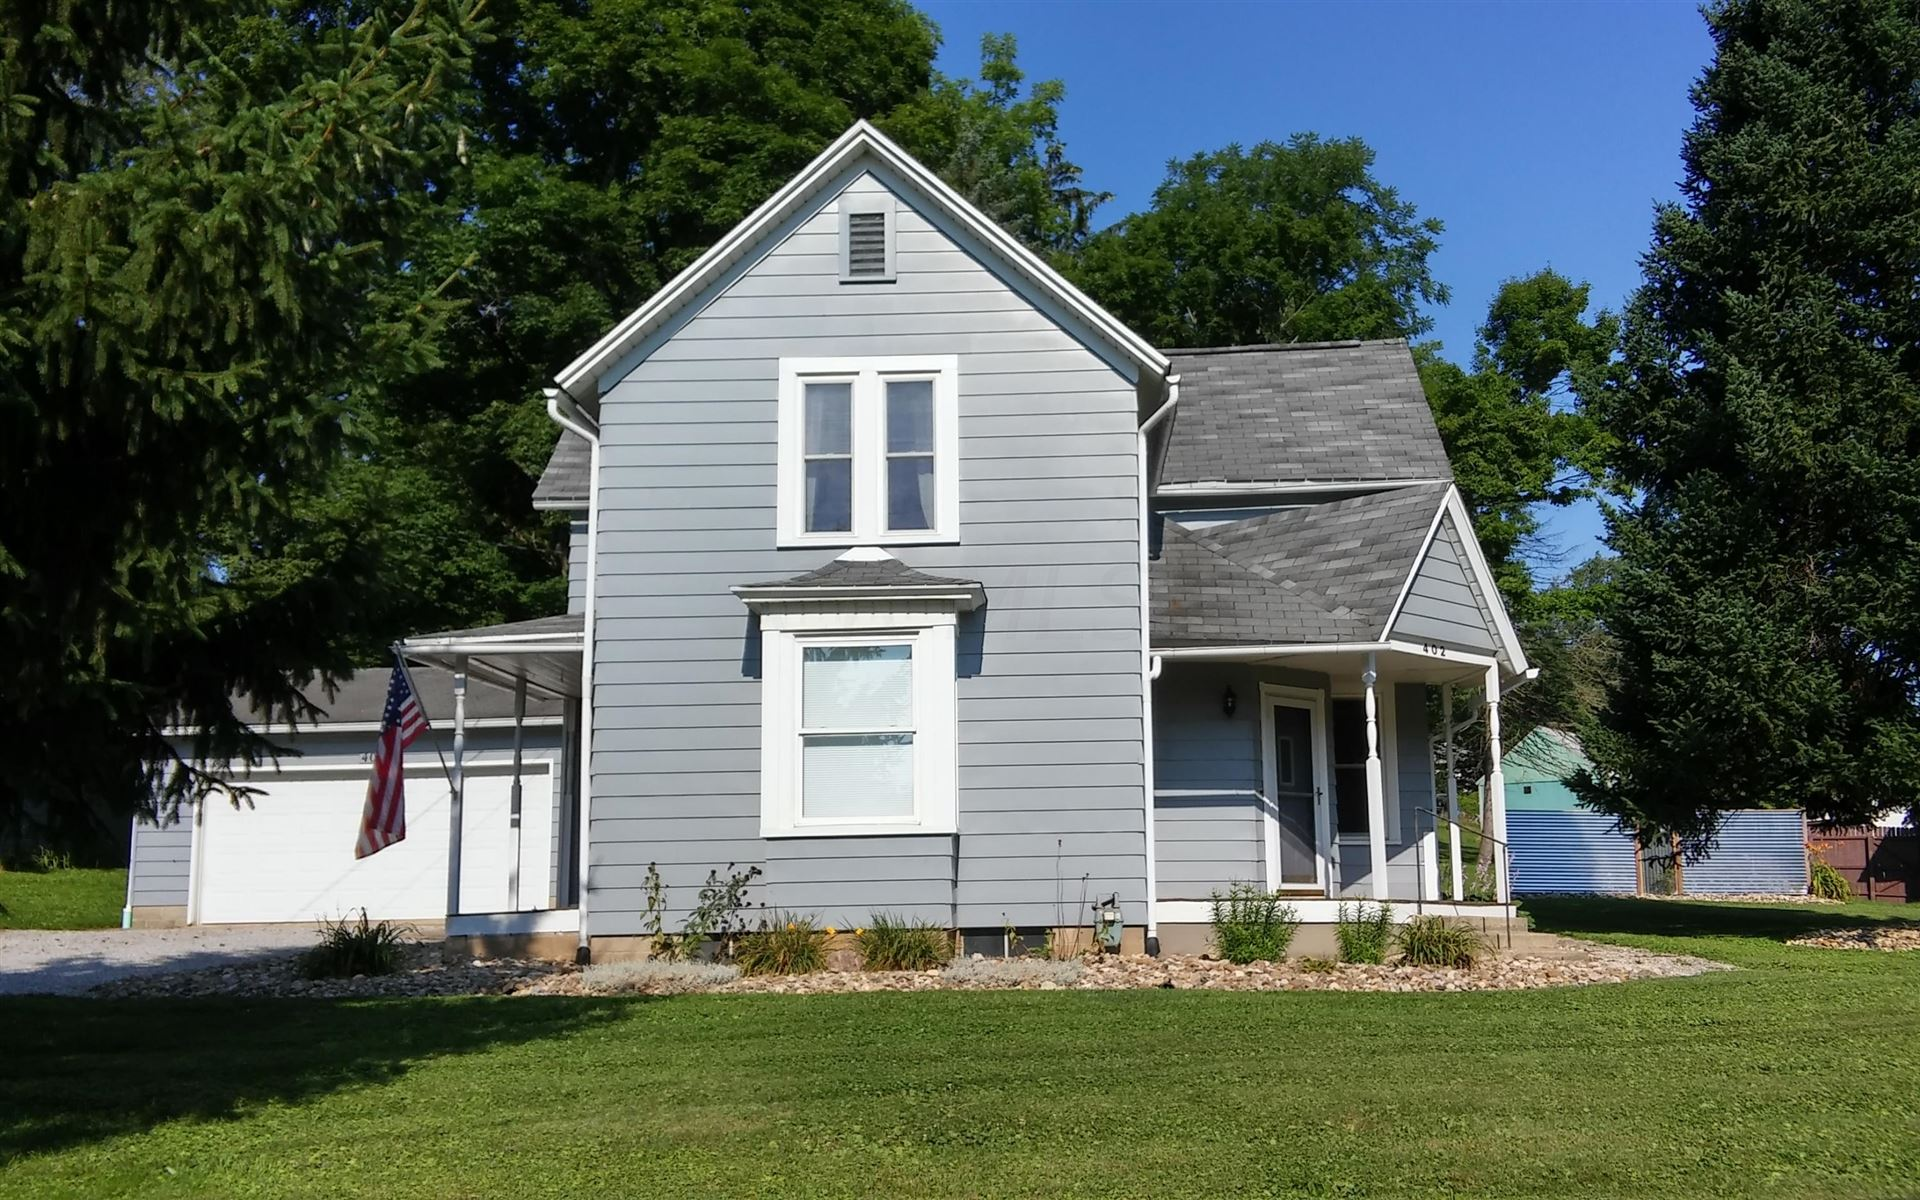 Photo for 402 Sychar Road, Mount Vernon, OH 43050 (MLS # 221029597)